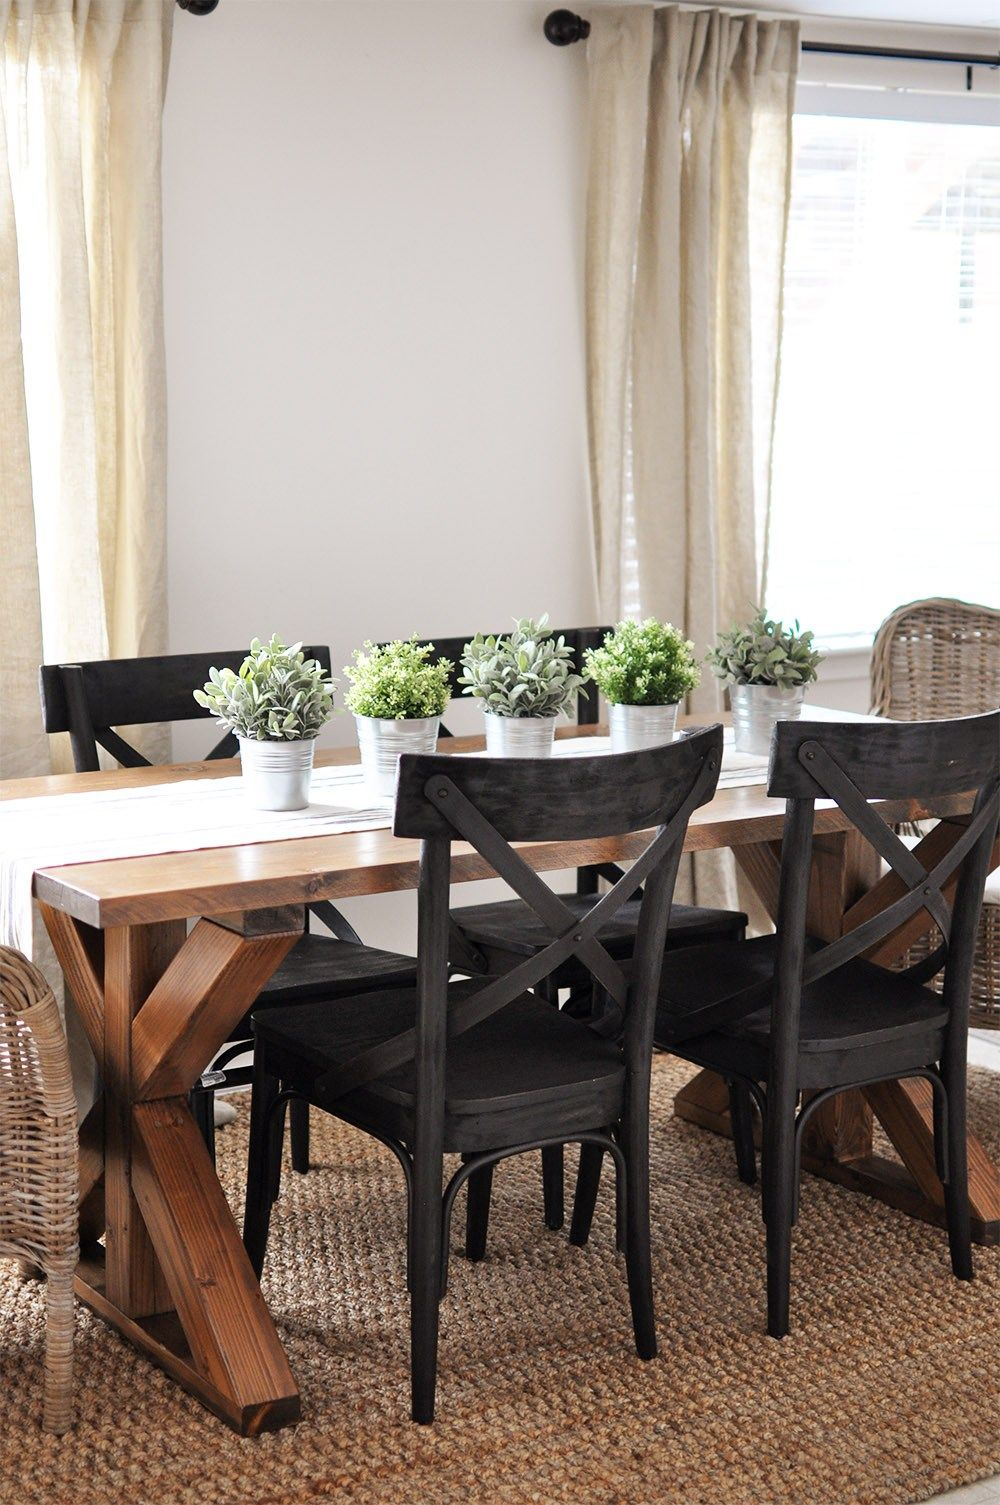 7 Diy Farmhouse Dining Room Tables All Have Free Able Plans Build Your Own Style Table And Don T Spend A Fortune On